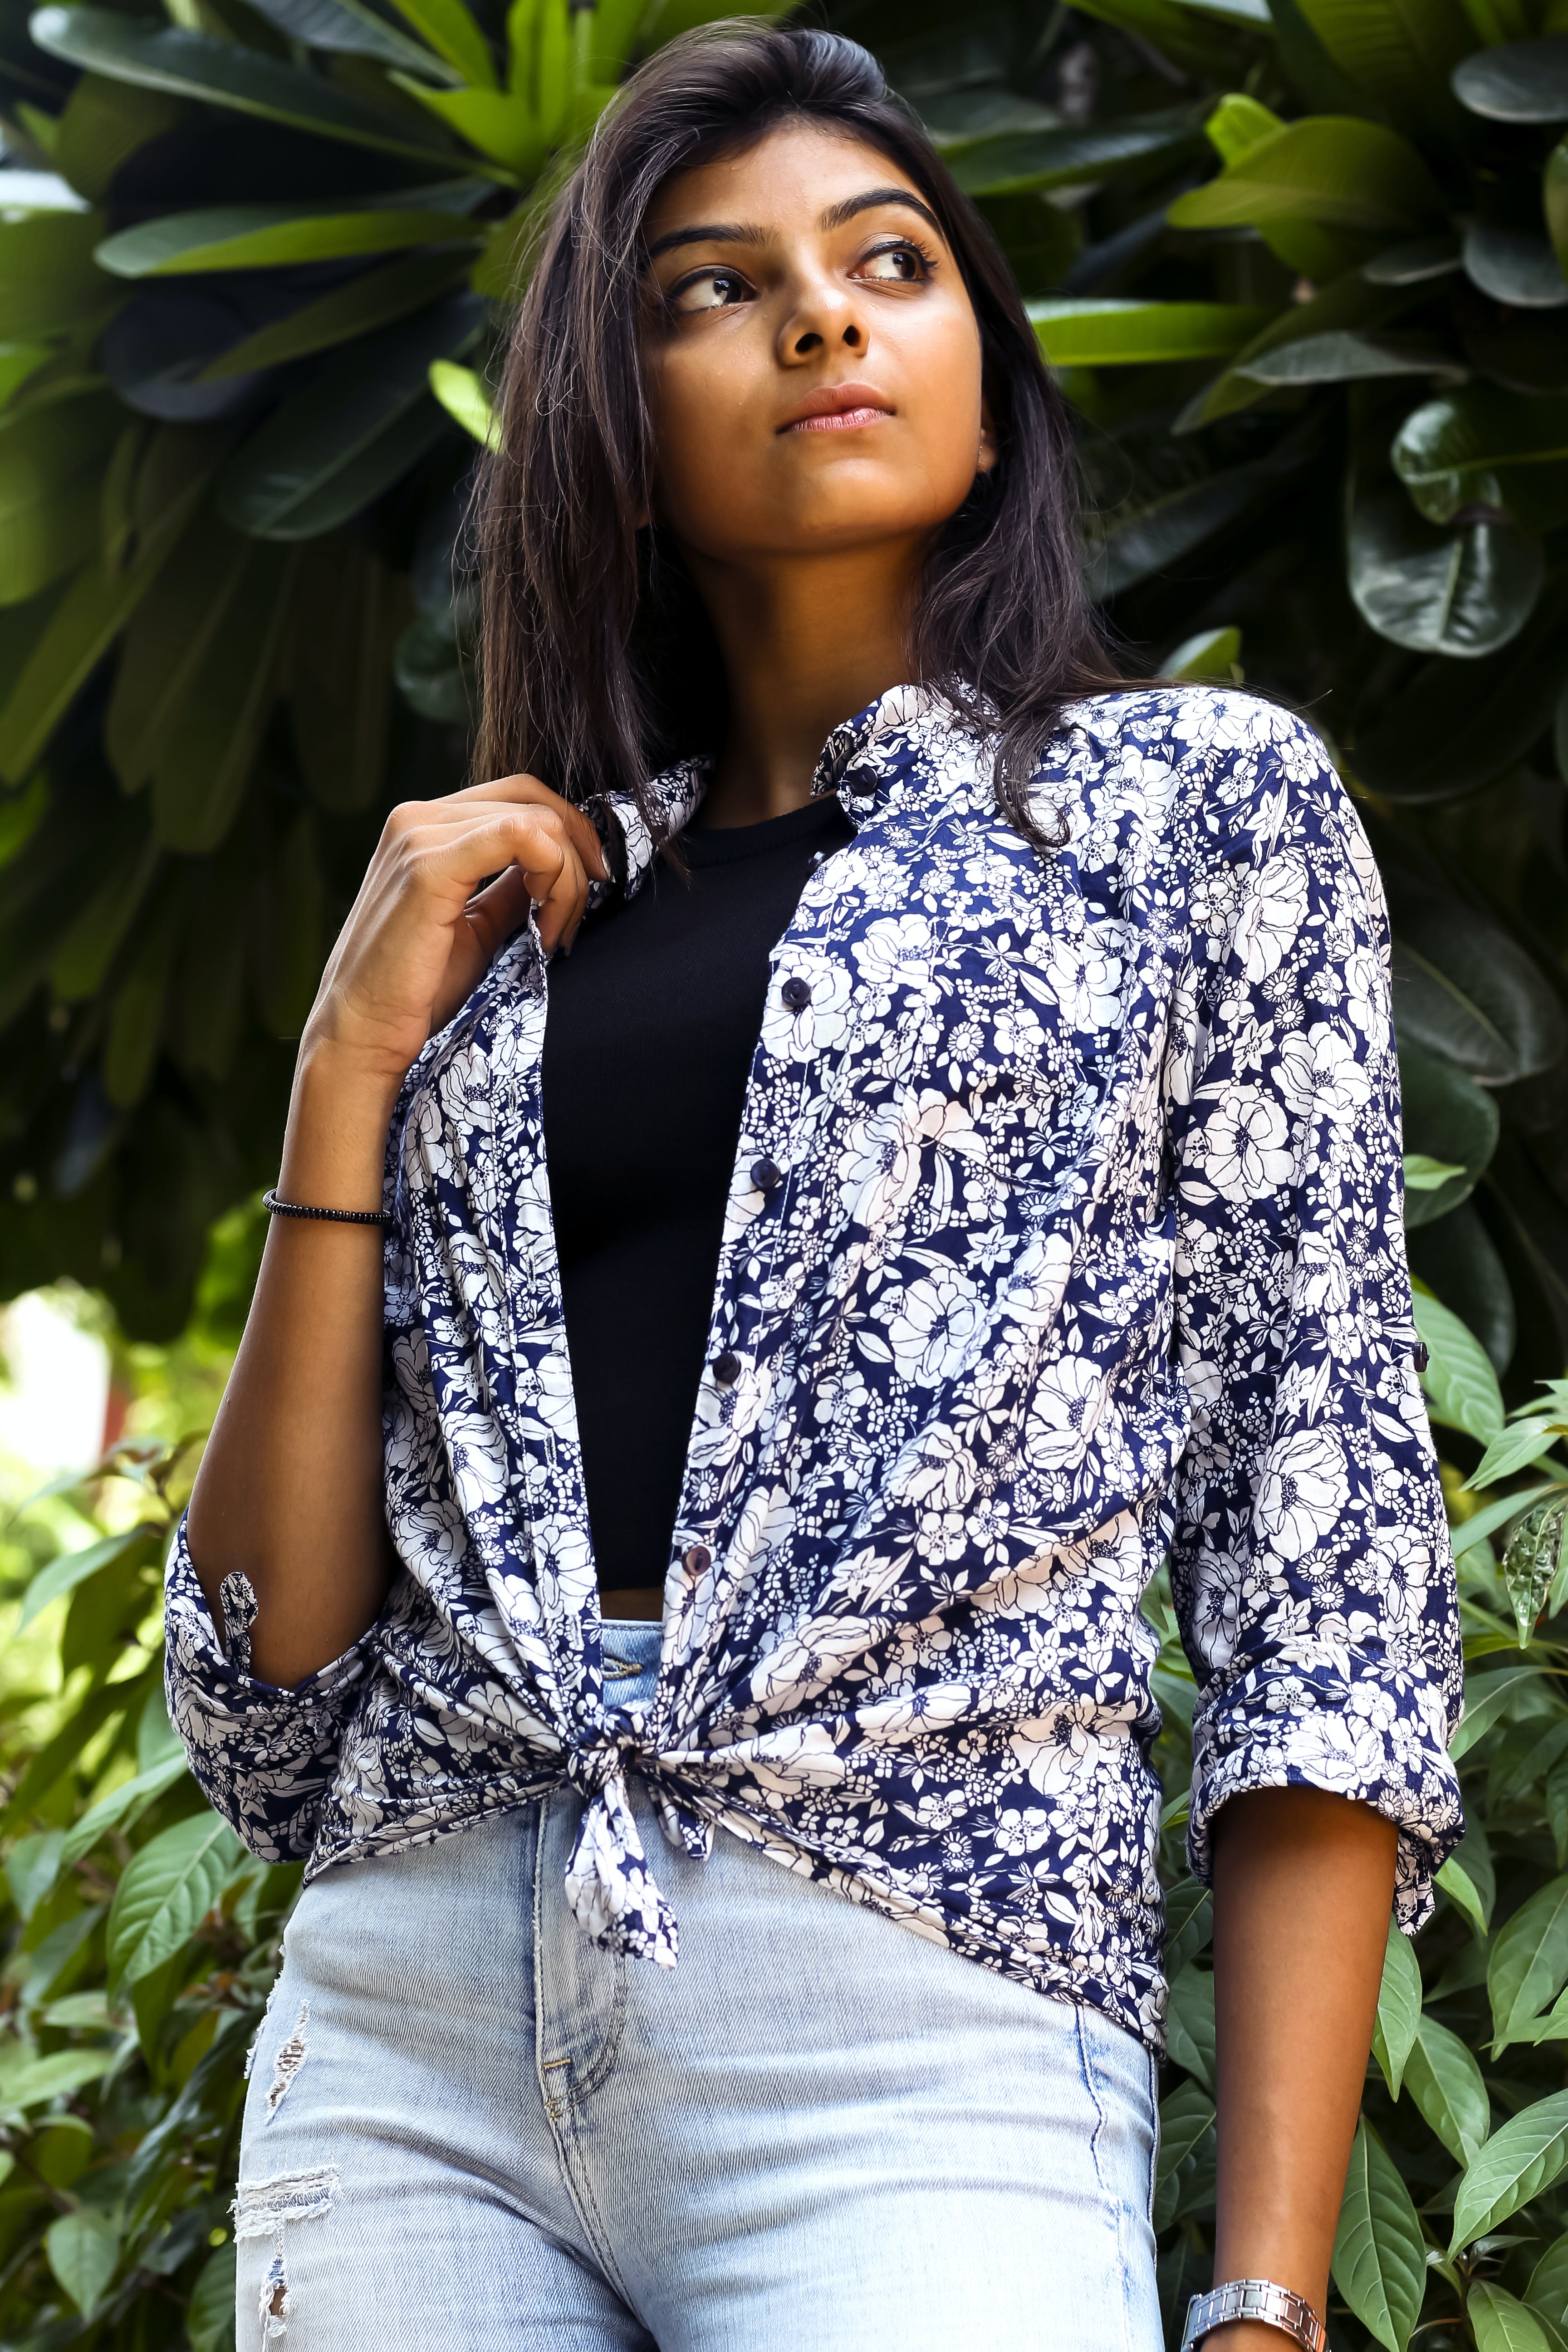 Woman In Blue And White Floral Top